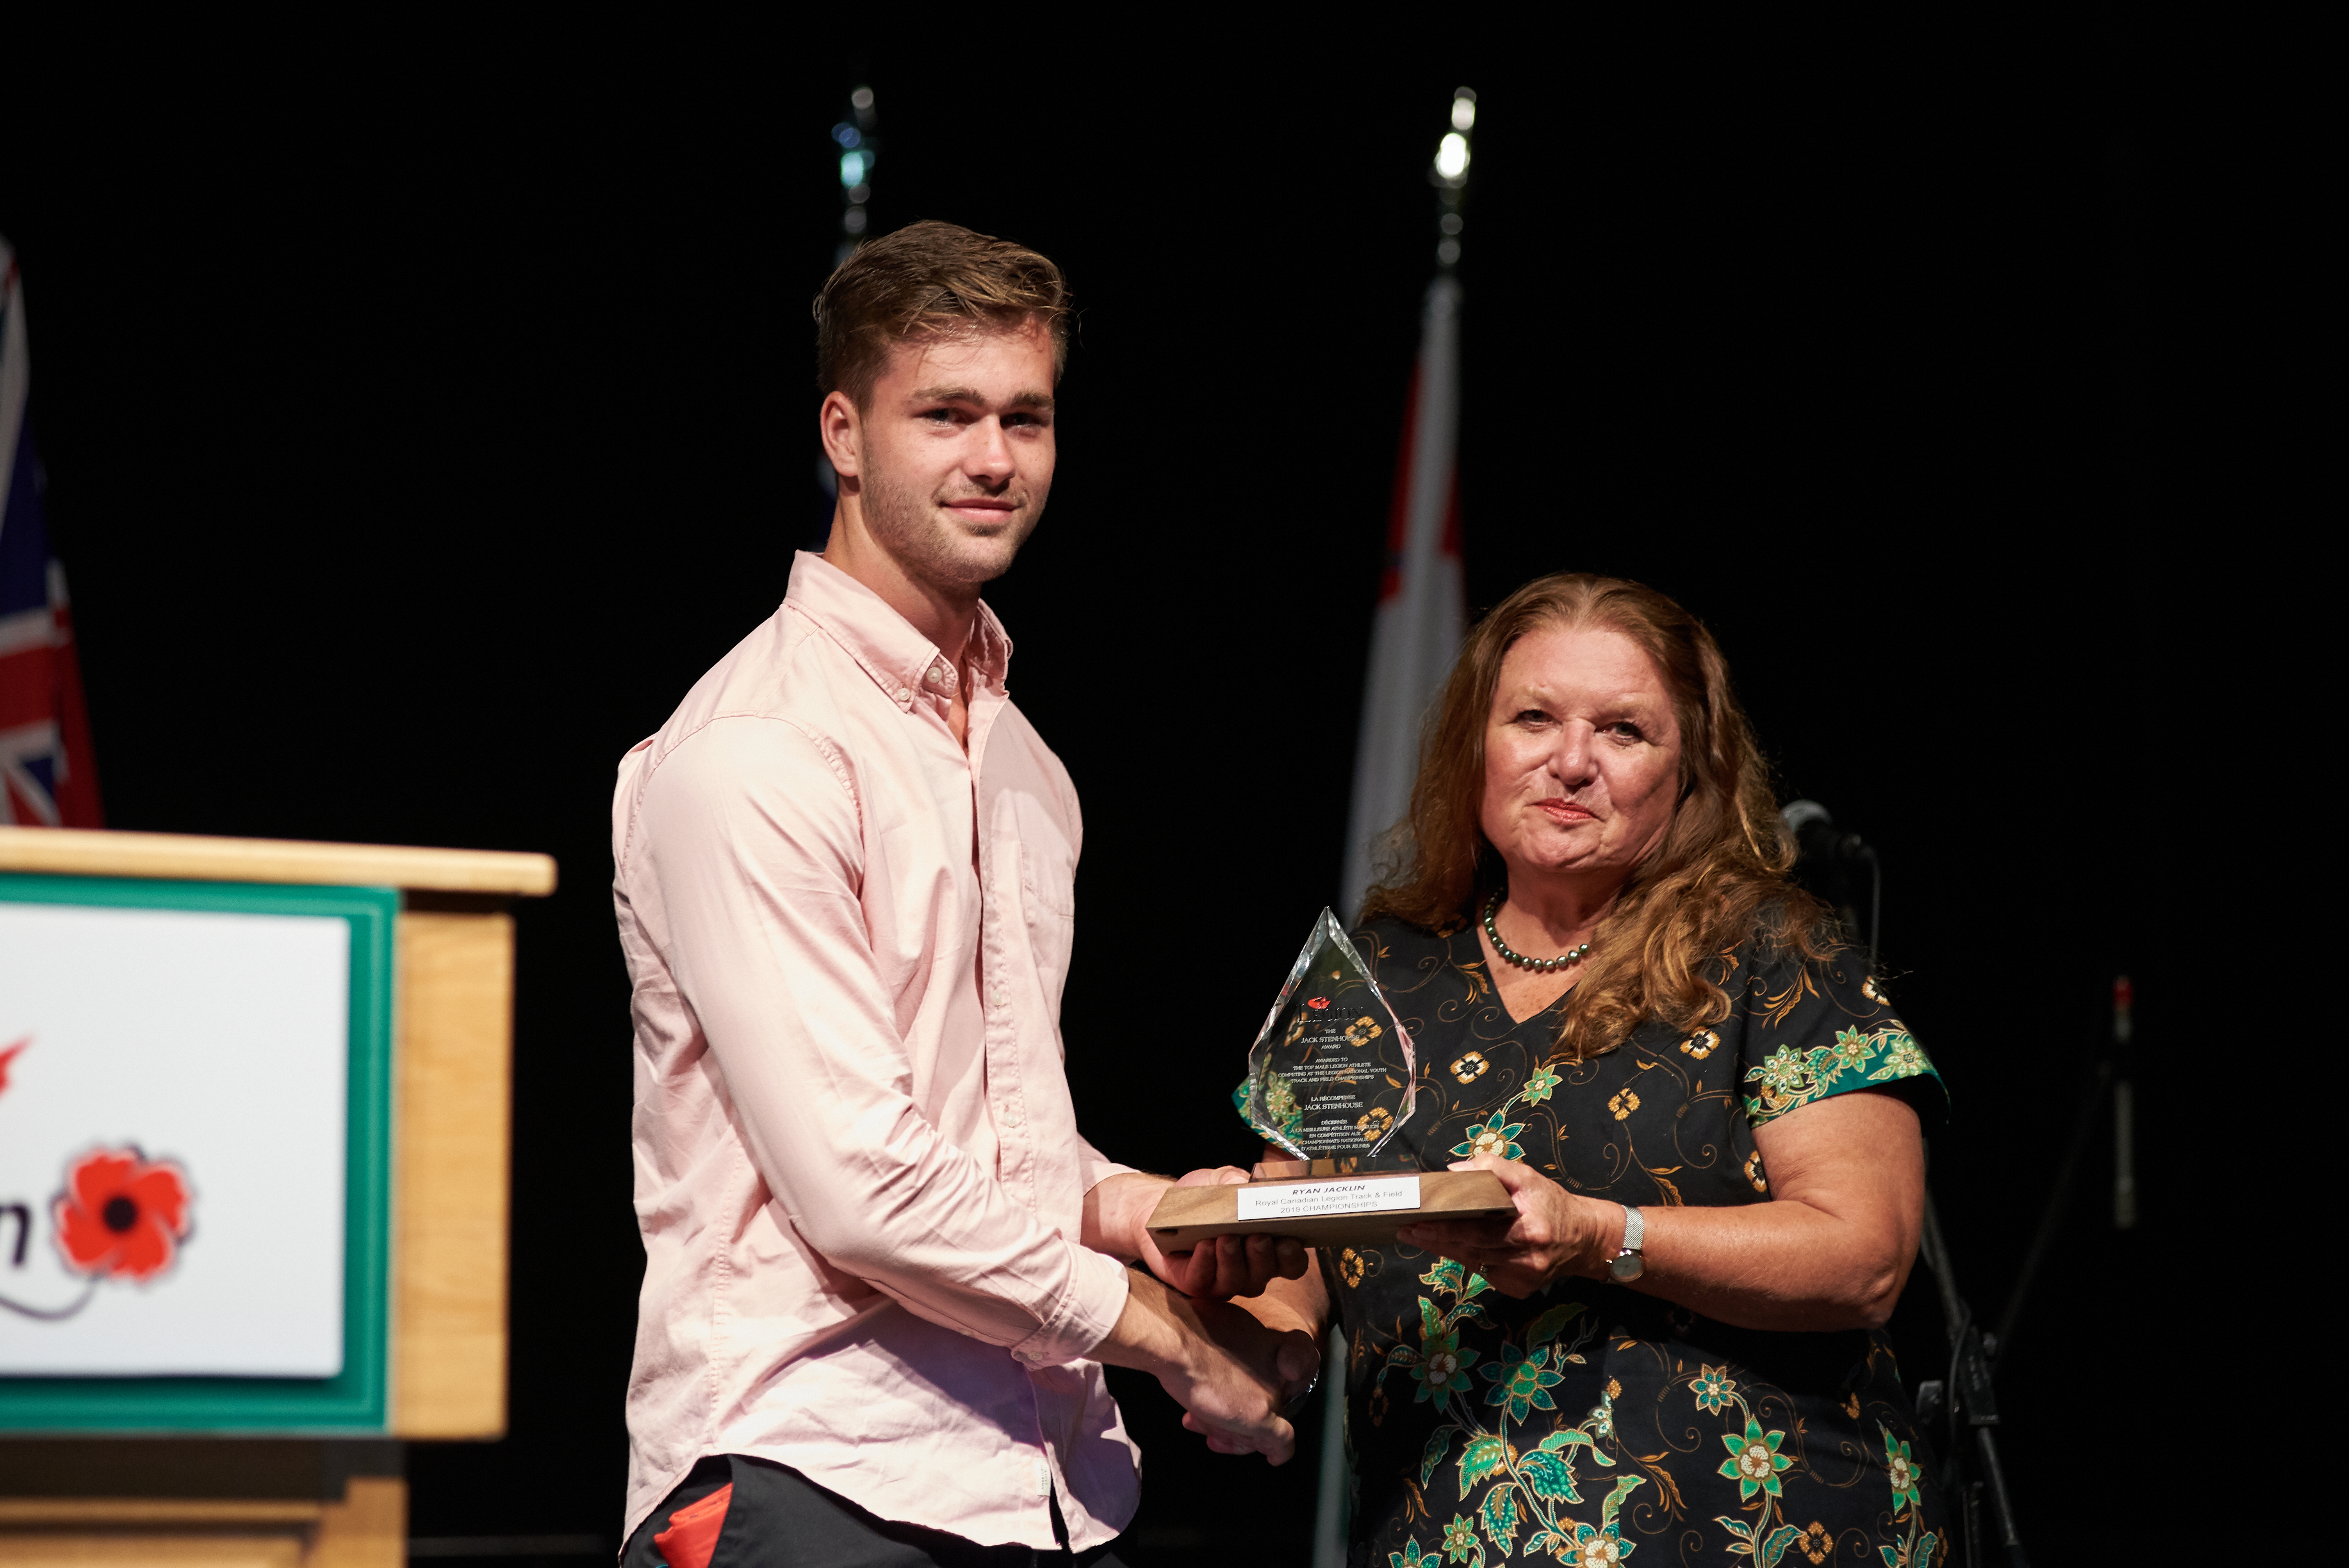 Ryan Jacklin from Ontario Command receives Jack Stenhouse Award for Top Male Athlete.